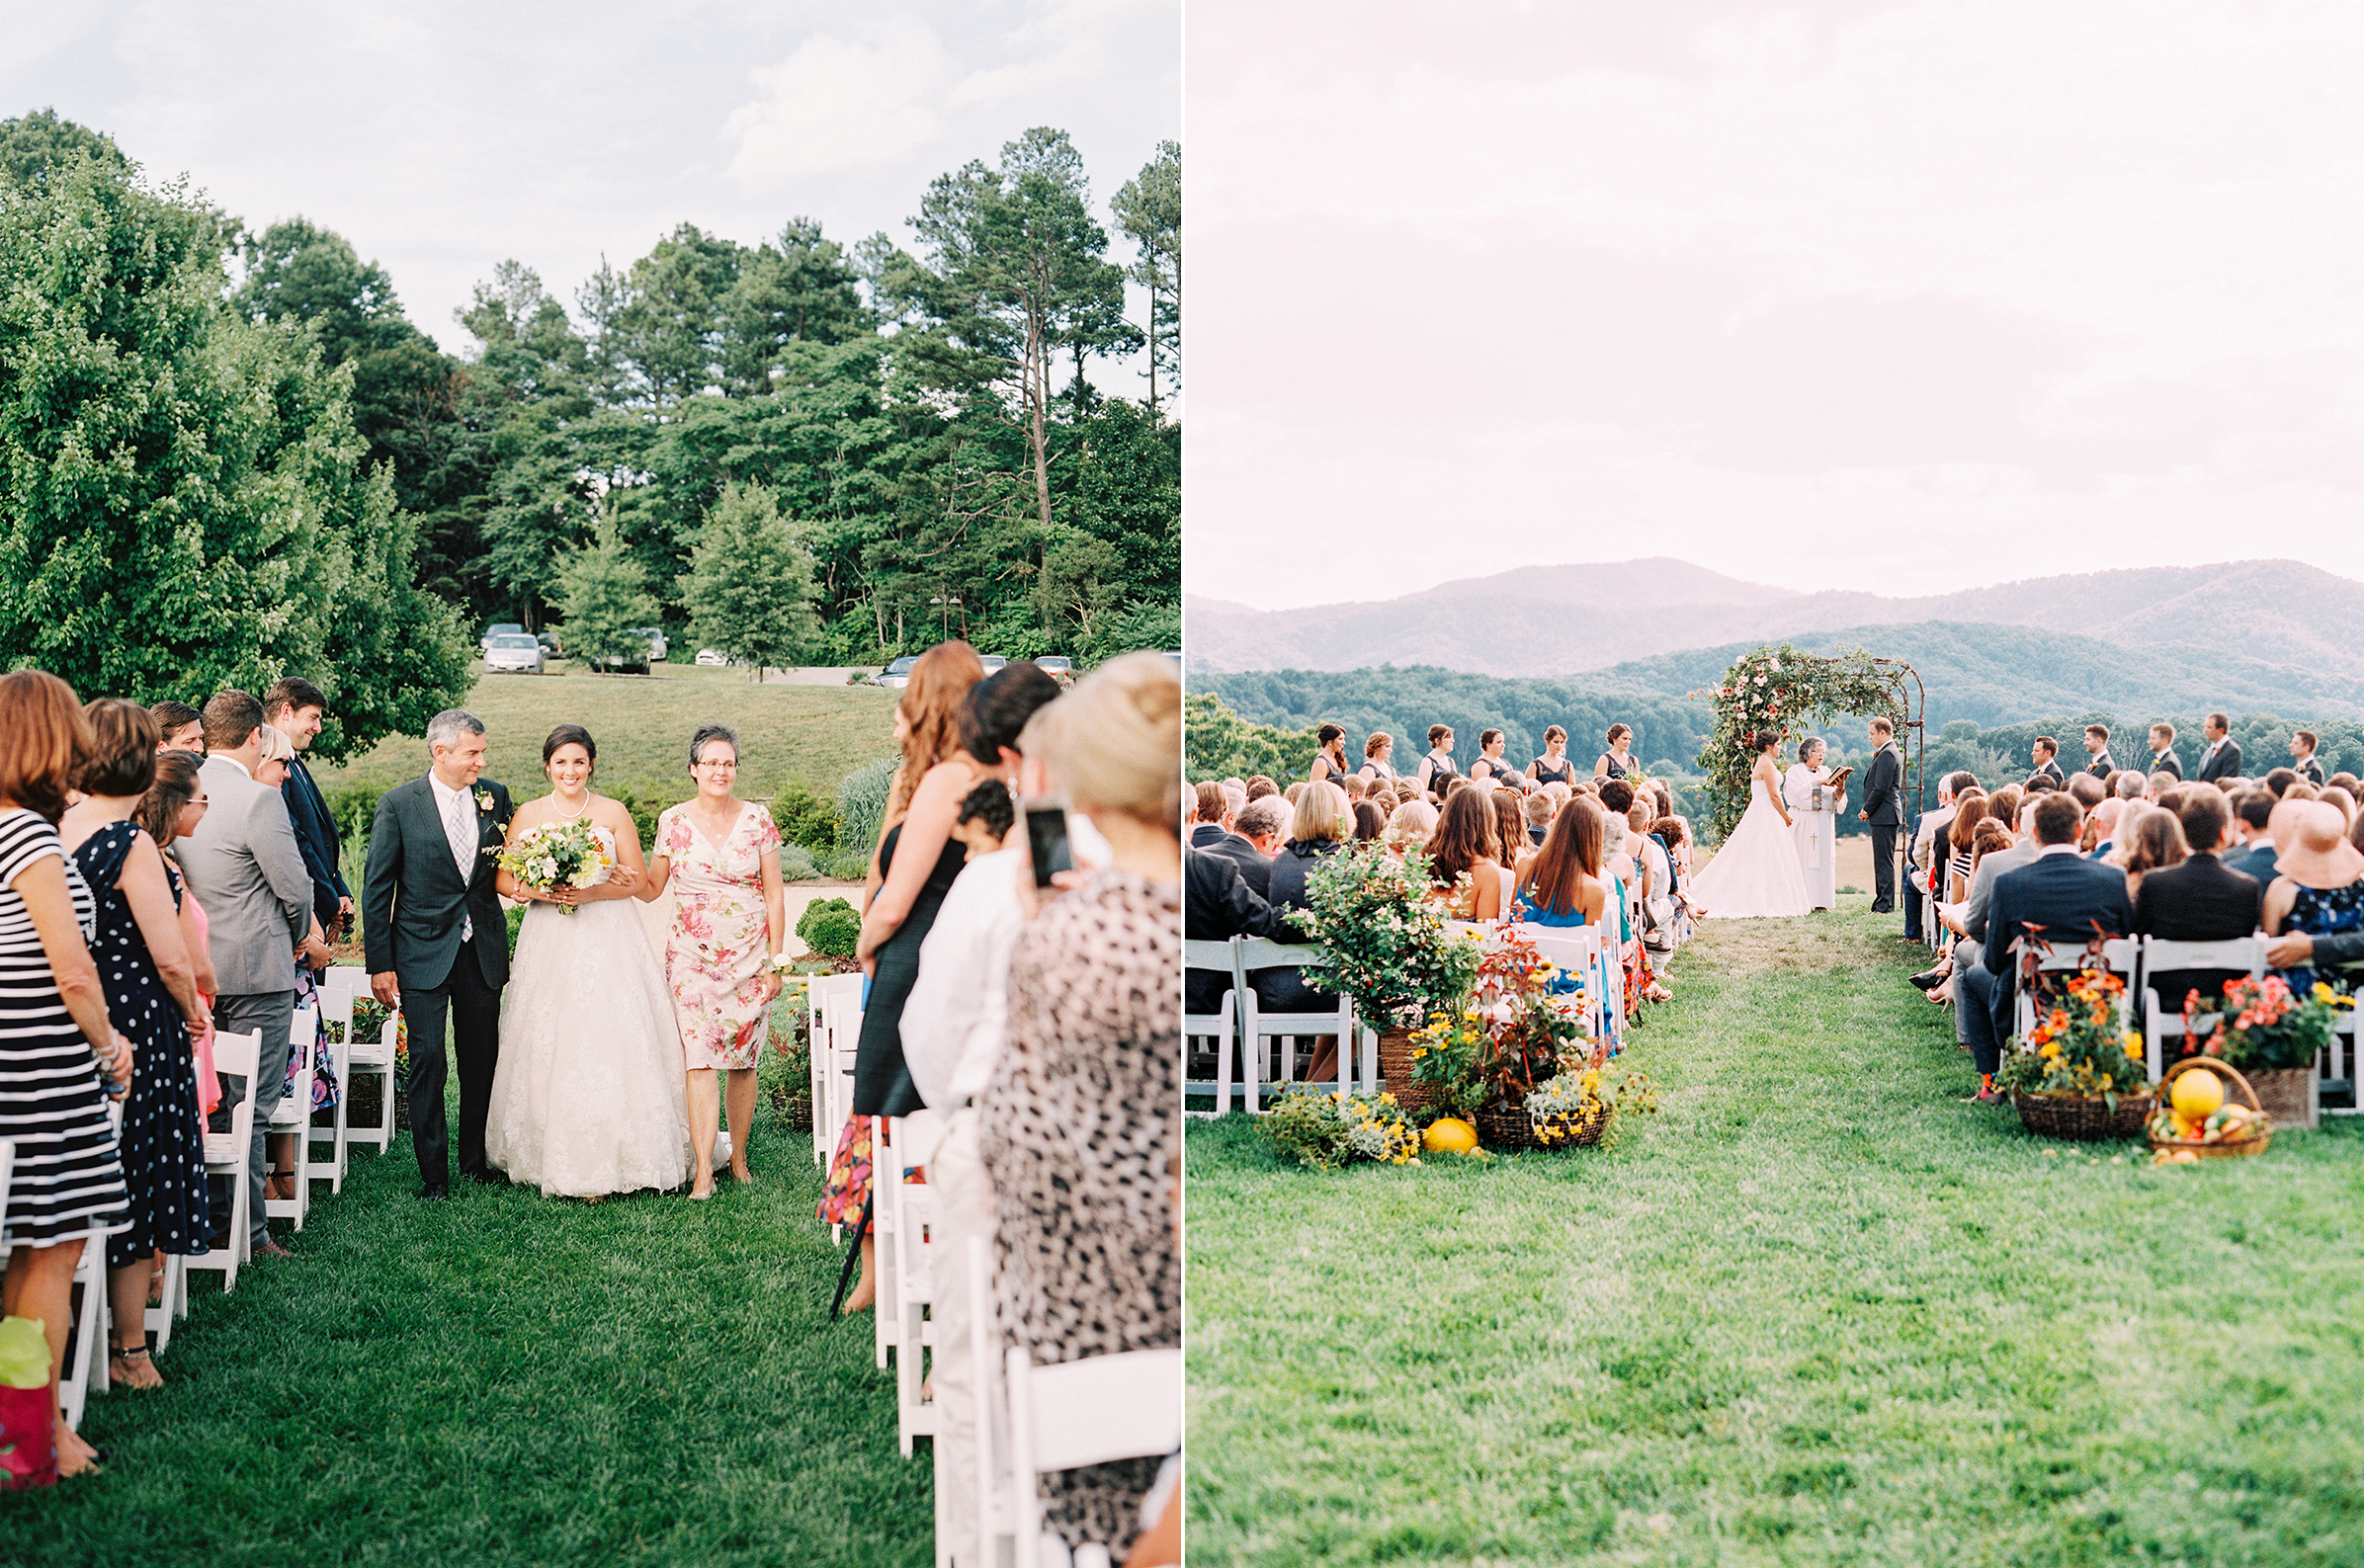 katie stoops photography-pippin hill-ashley baber weddings23.jpg